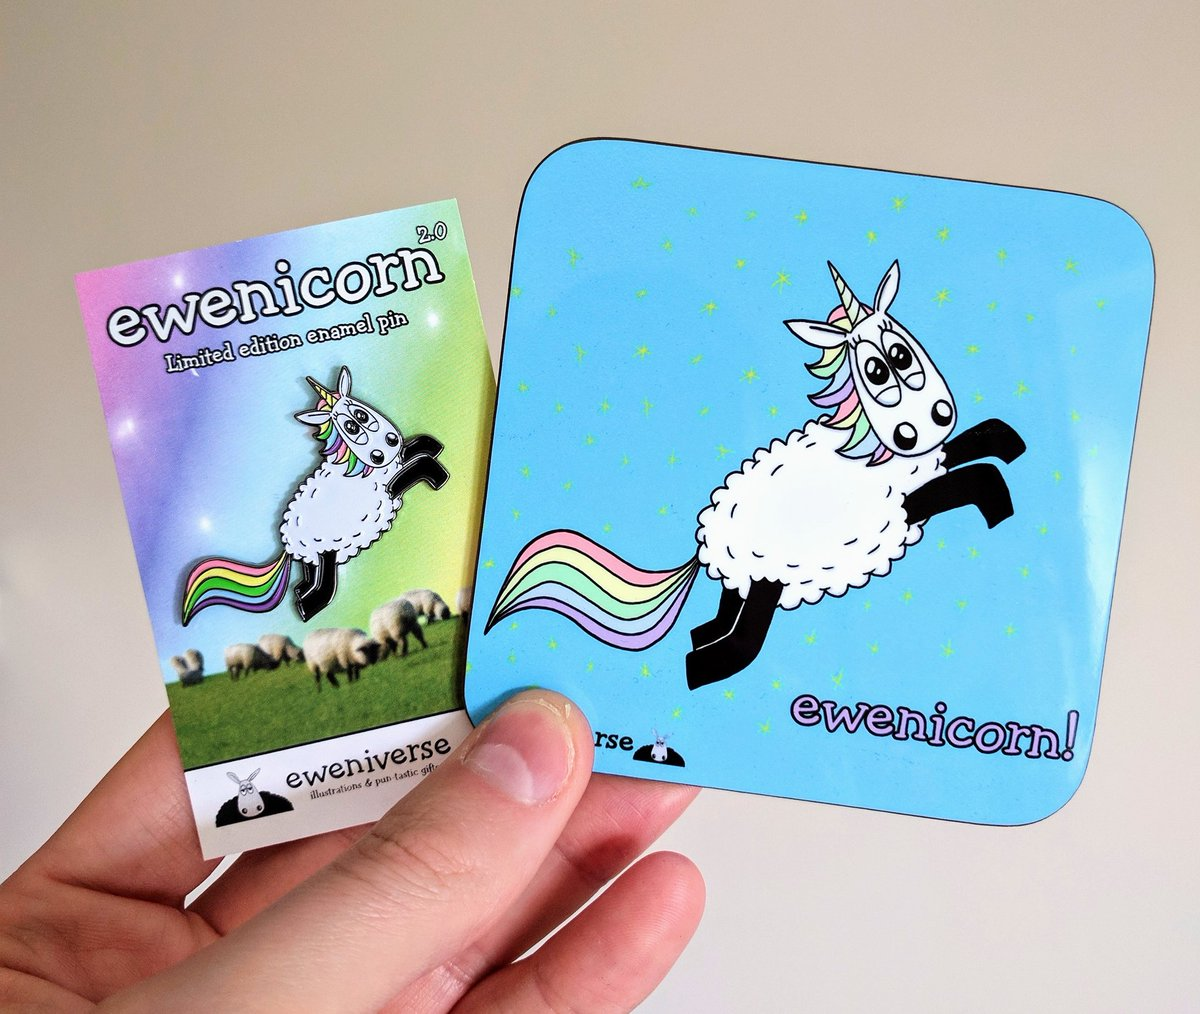 Enamel pin &amp; coaster - the mythical Ewenicorn - only at  http://Www. eweniverse.com  &nbsp;     #HandmadeHour #Sheep #Unicorn<br>http://pic.twitter.com/TvkeqTEA5M